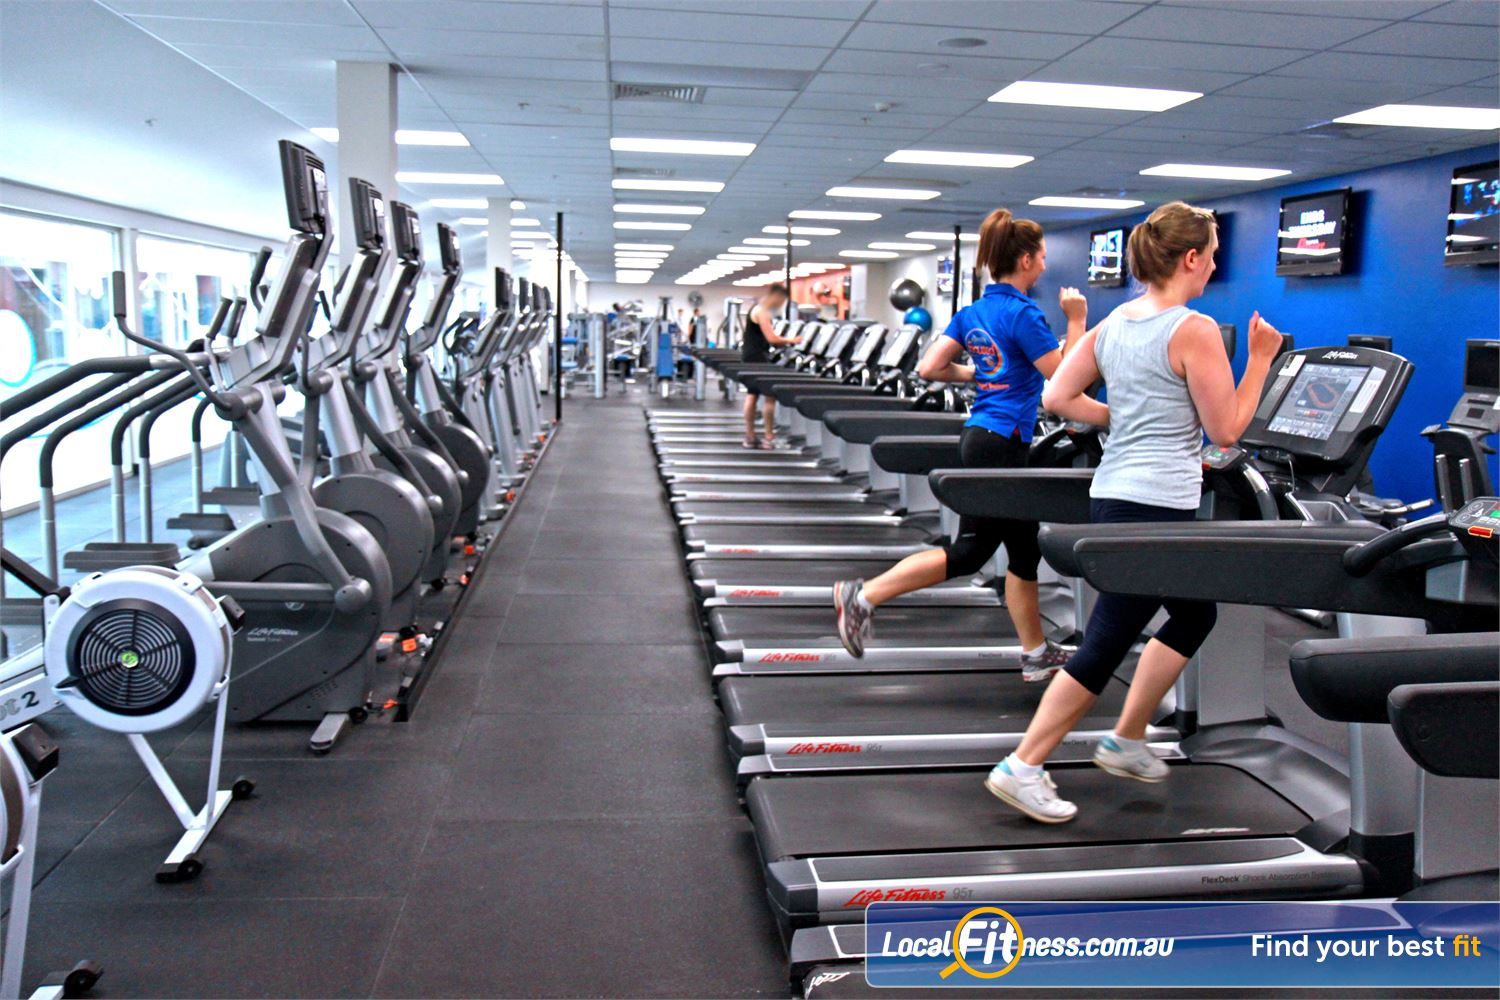 Goodlife Health Clubs Near Fitzroy Tune into your favorite shows on your personalised LCD screen or cardio theatre.